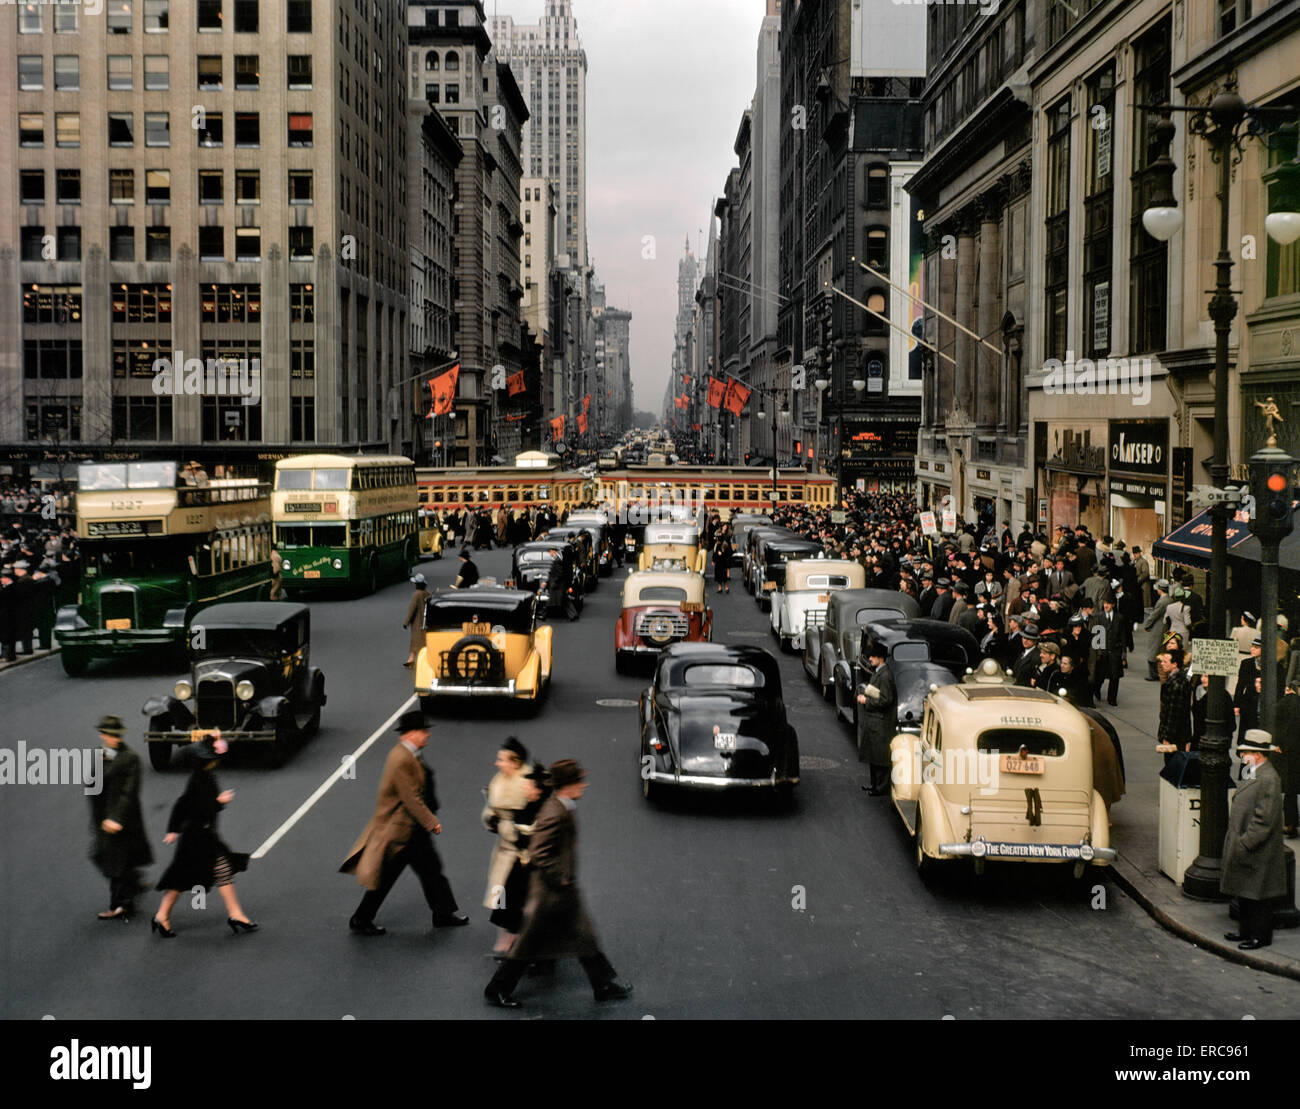 1940s PEDESTRIANS CARS TAXIS BUSES TROLLEY TRAFFIC FIFTH AVENUE LOOKING NORTH FROM JUST BELOW 42nd STREET MANHATTAN Stock Photo